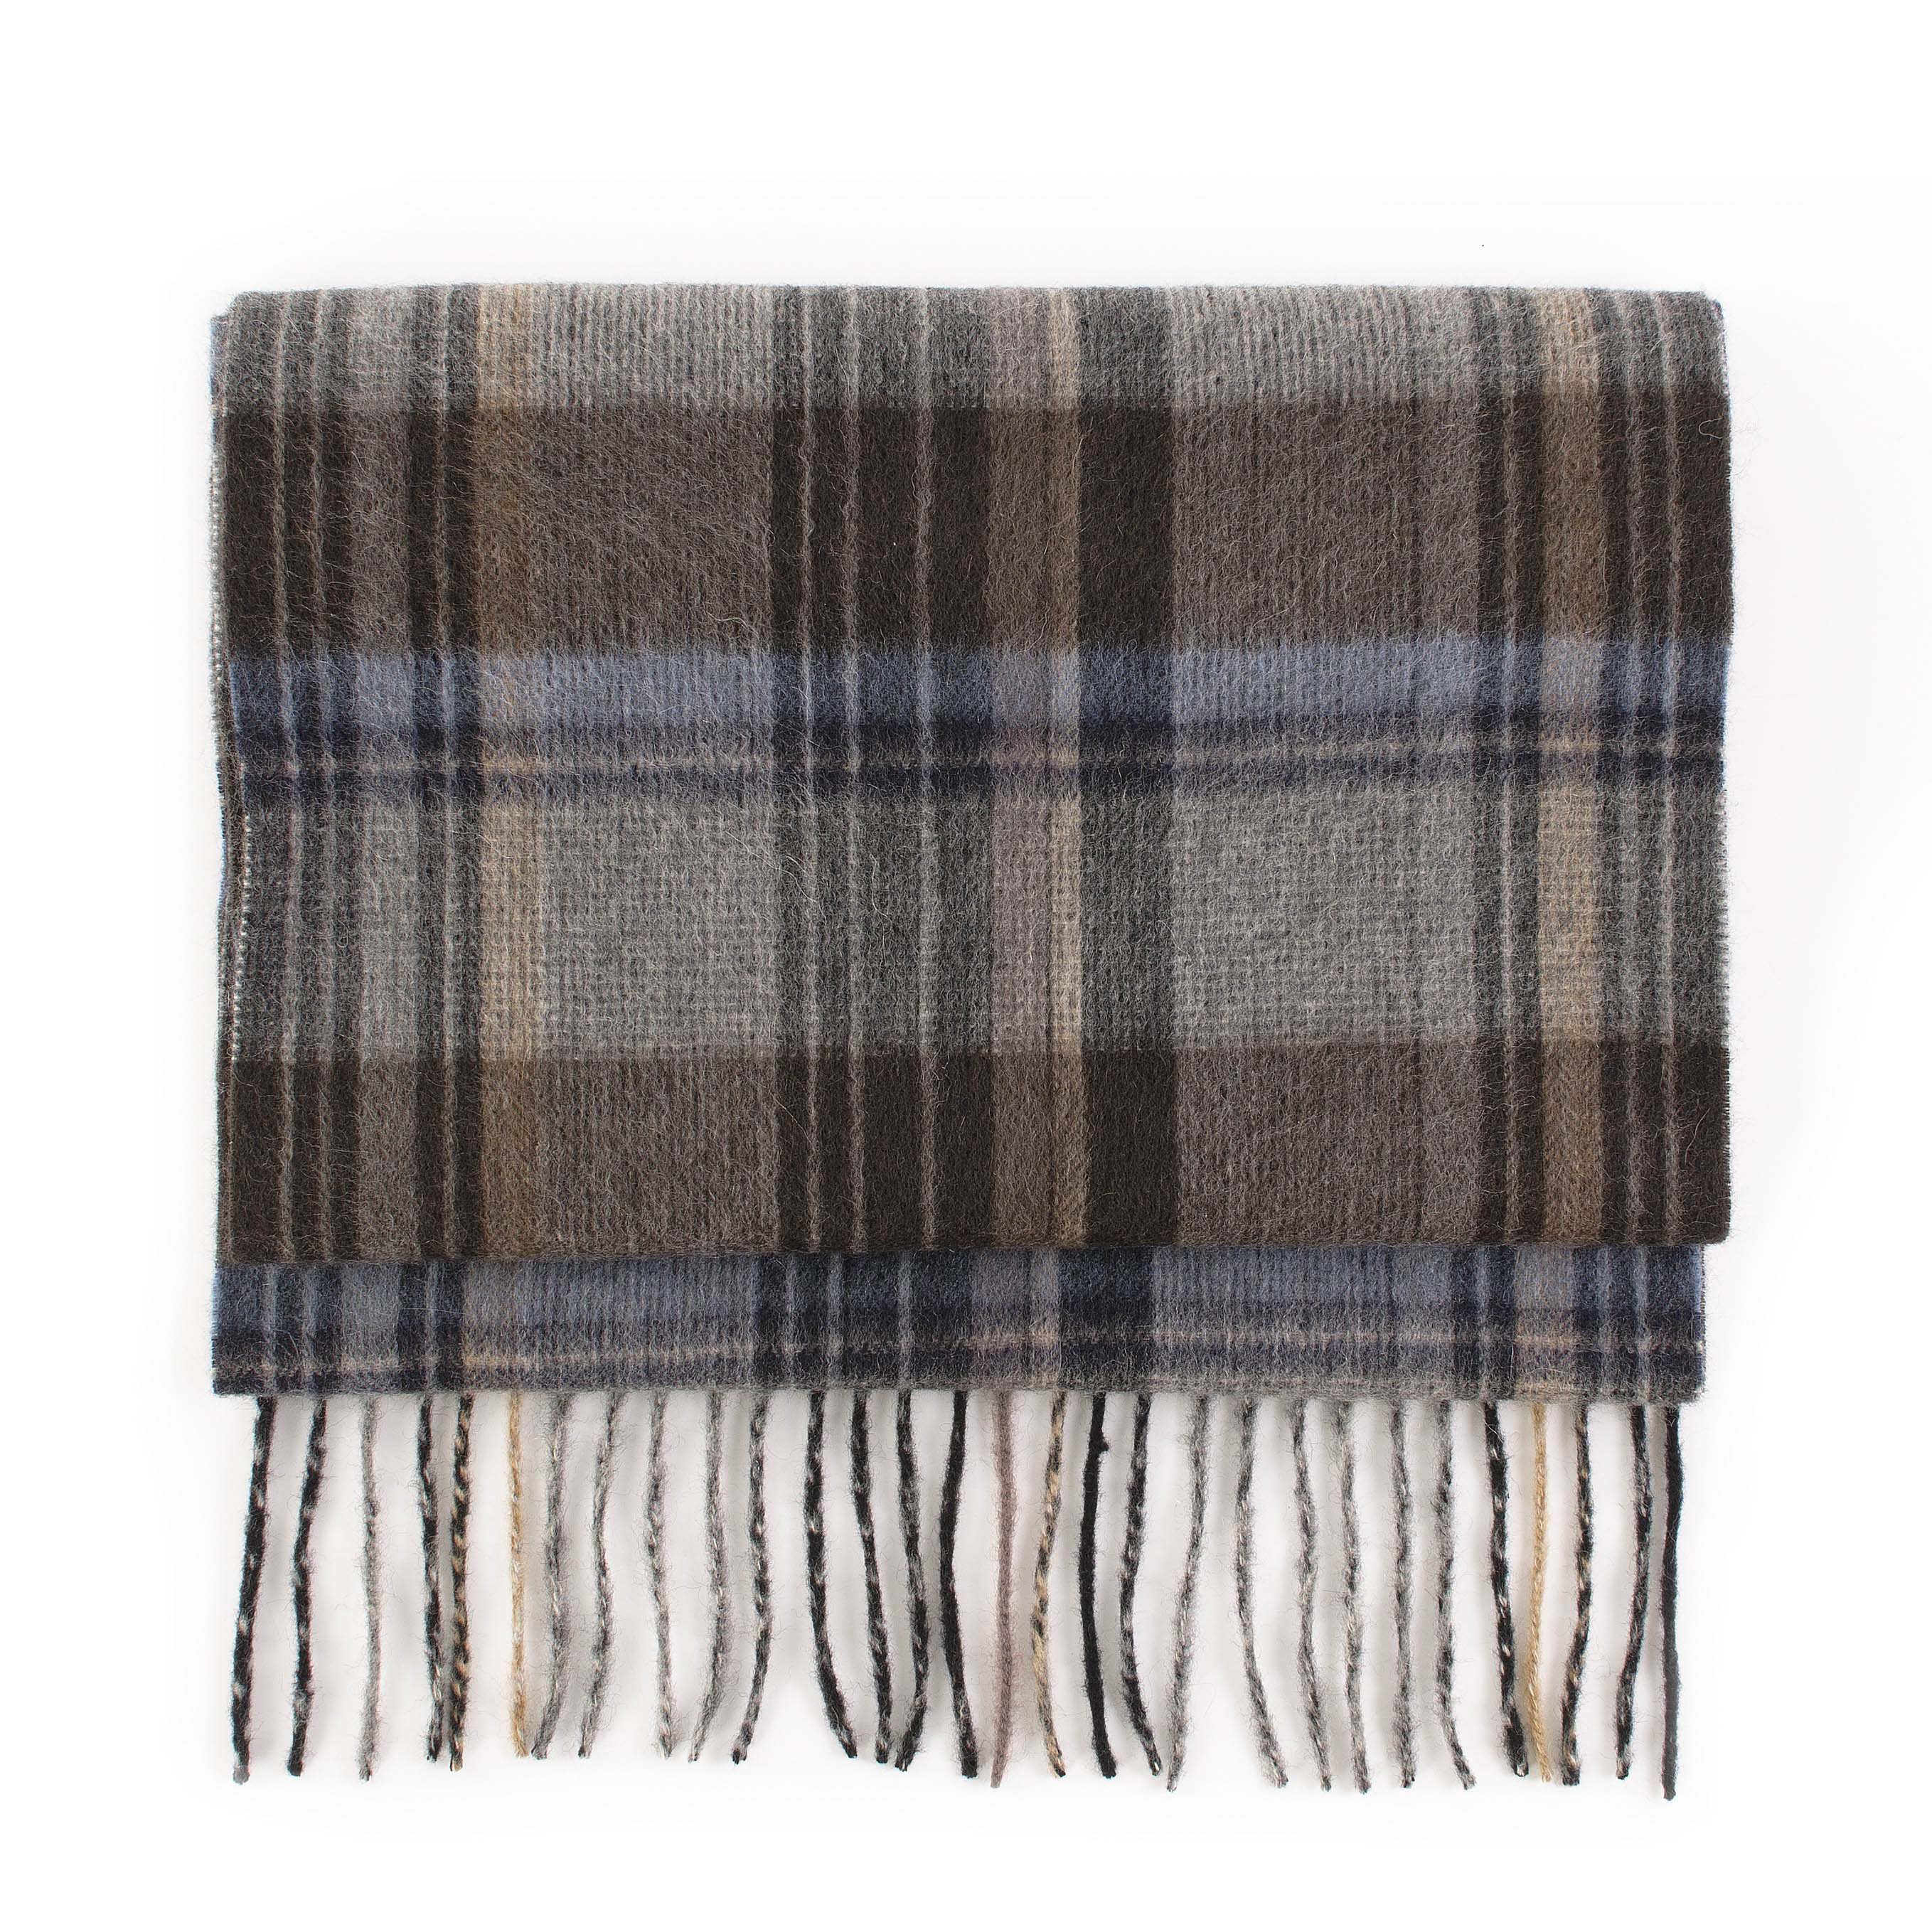 Scarf cashmere check, blue, grey, brown